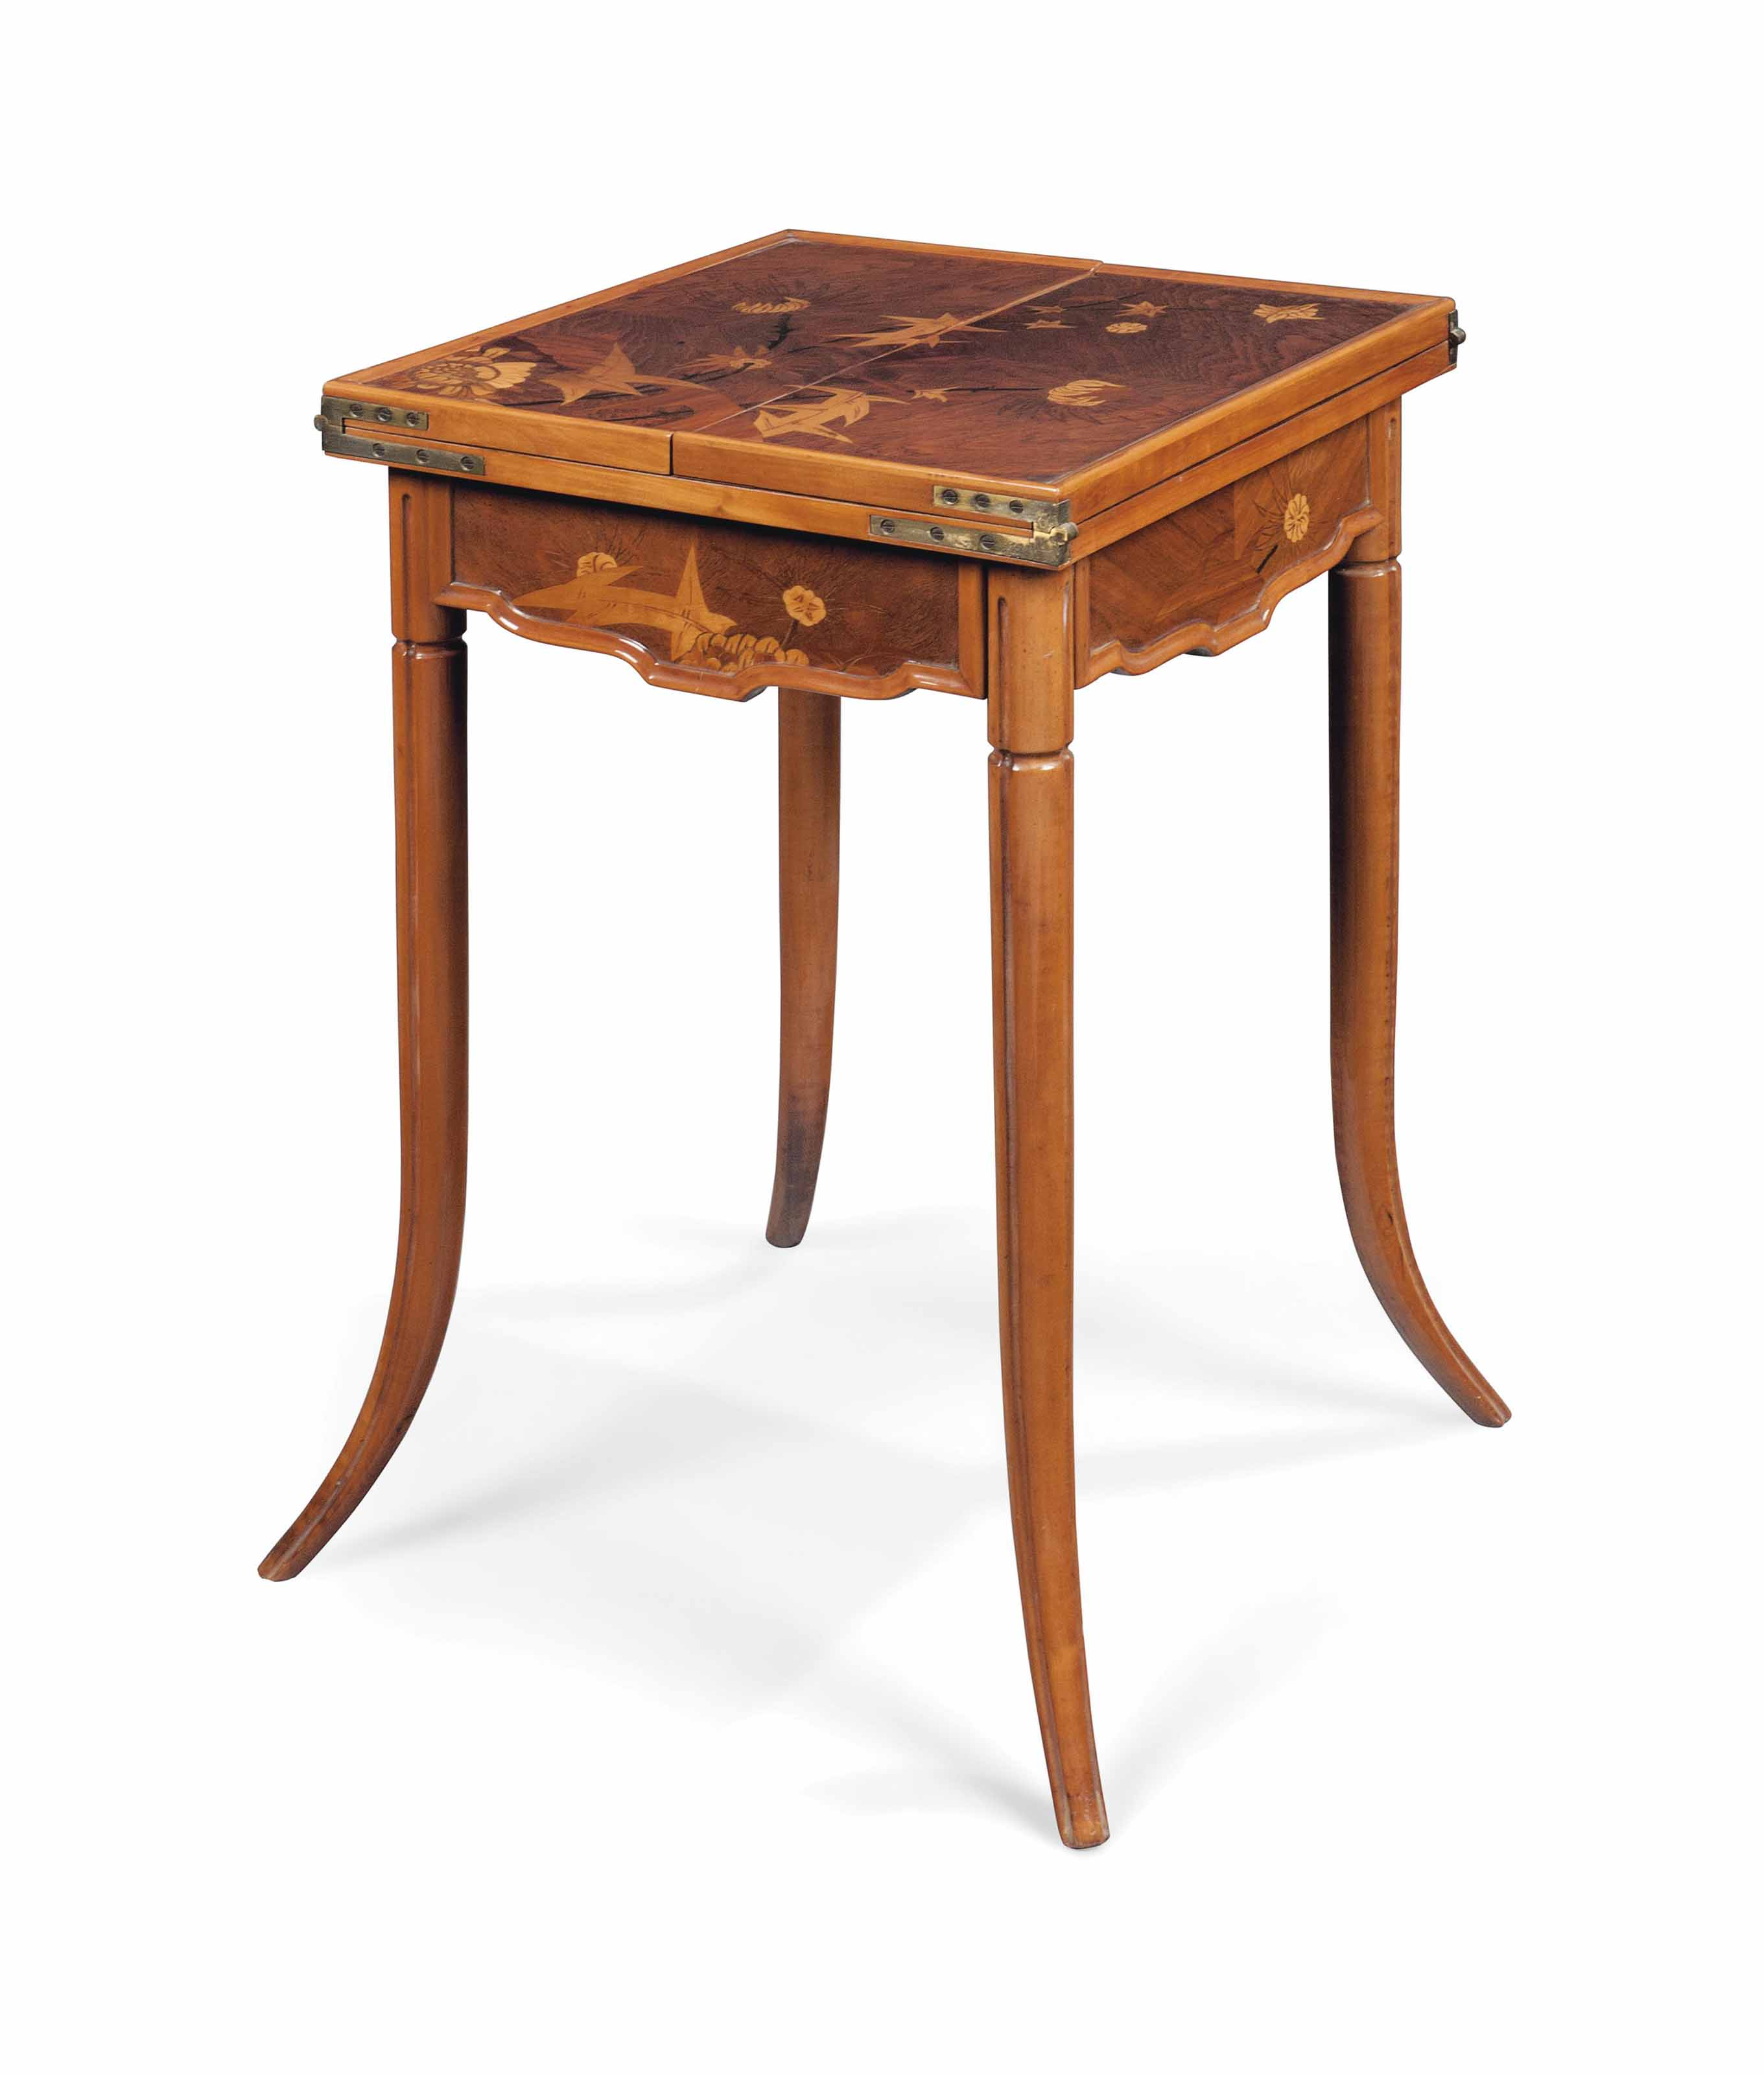 A GALLÉ WALNUT AND MARQUETRY GAMES TABLE